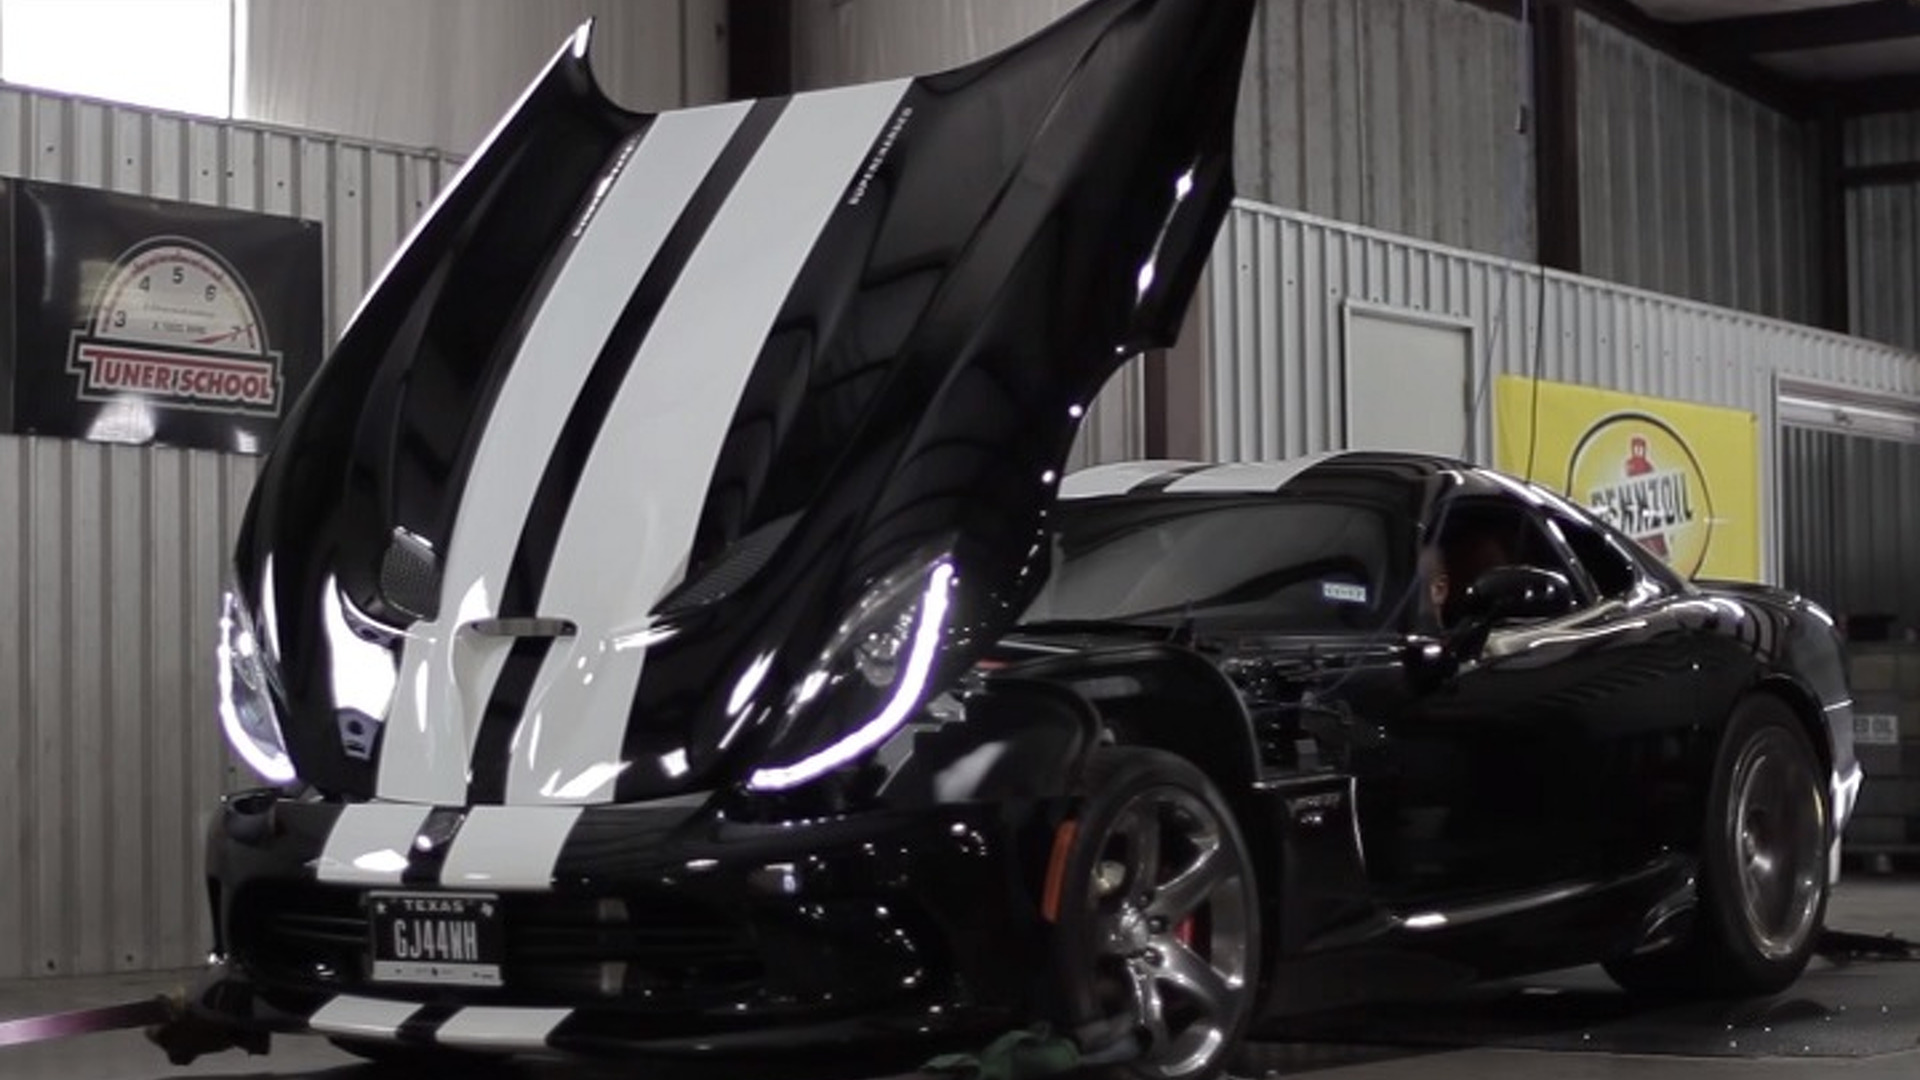 Hennessey Let Its 800-HP Dodge Viper Loose on the Dyno